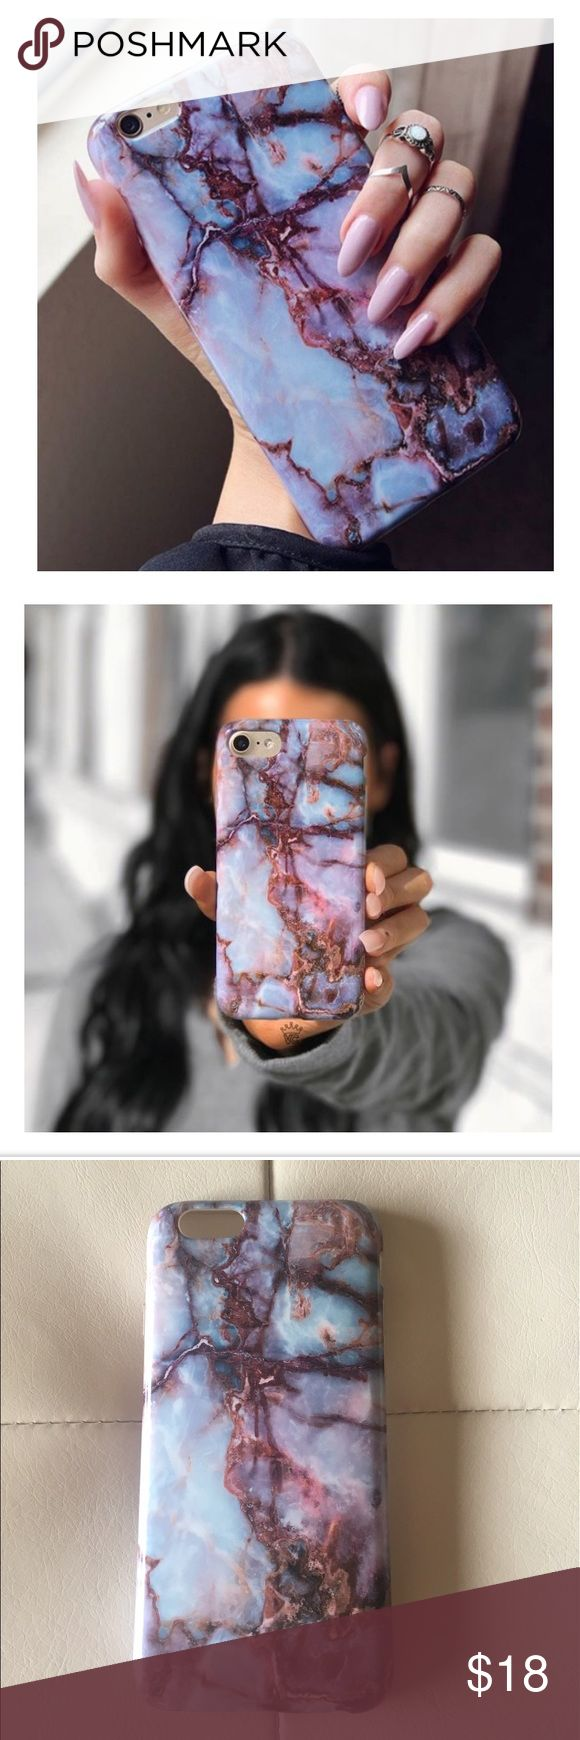 Velvet Caviar Galaxy Marble Phone Case Velvet Caviar Galaxy Marble iPhone 6/6s case, protective with gloss finish. Like new condition, bought it for my mom then she upgraded to iPhone7. Velvet Caviar Accessories Phone Cases